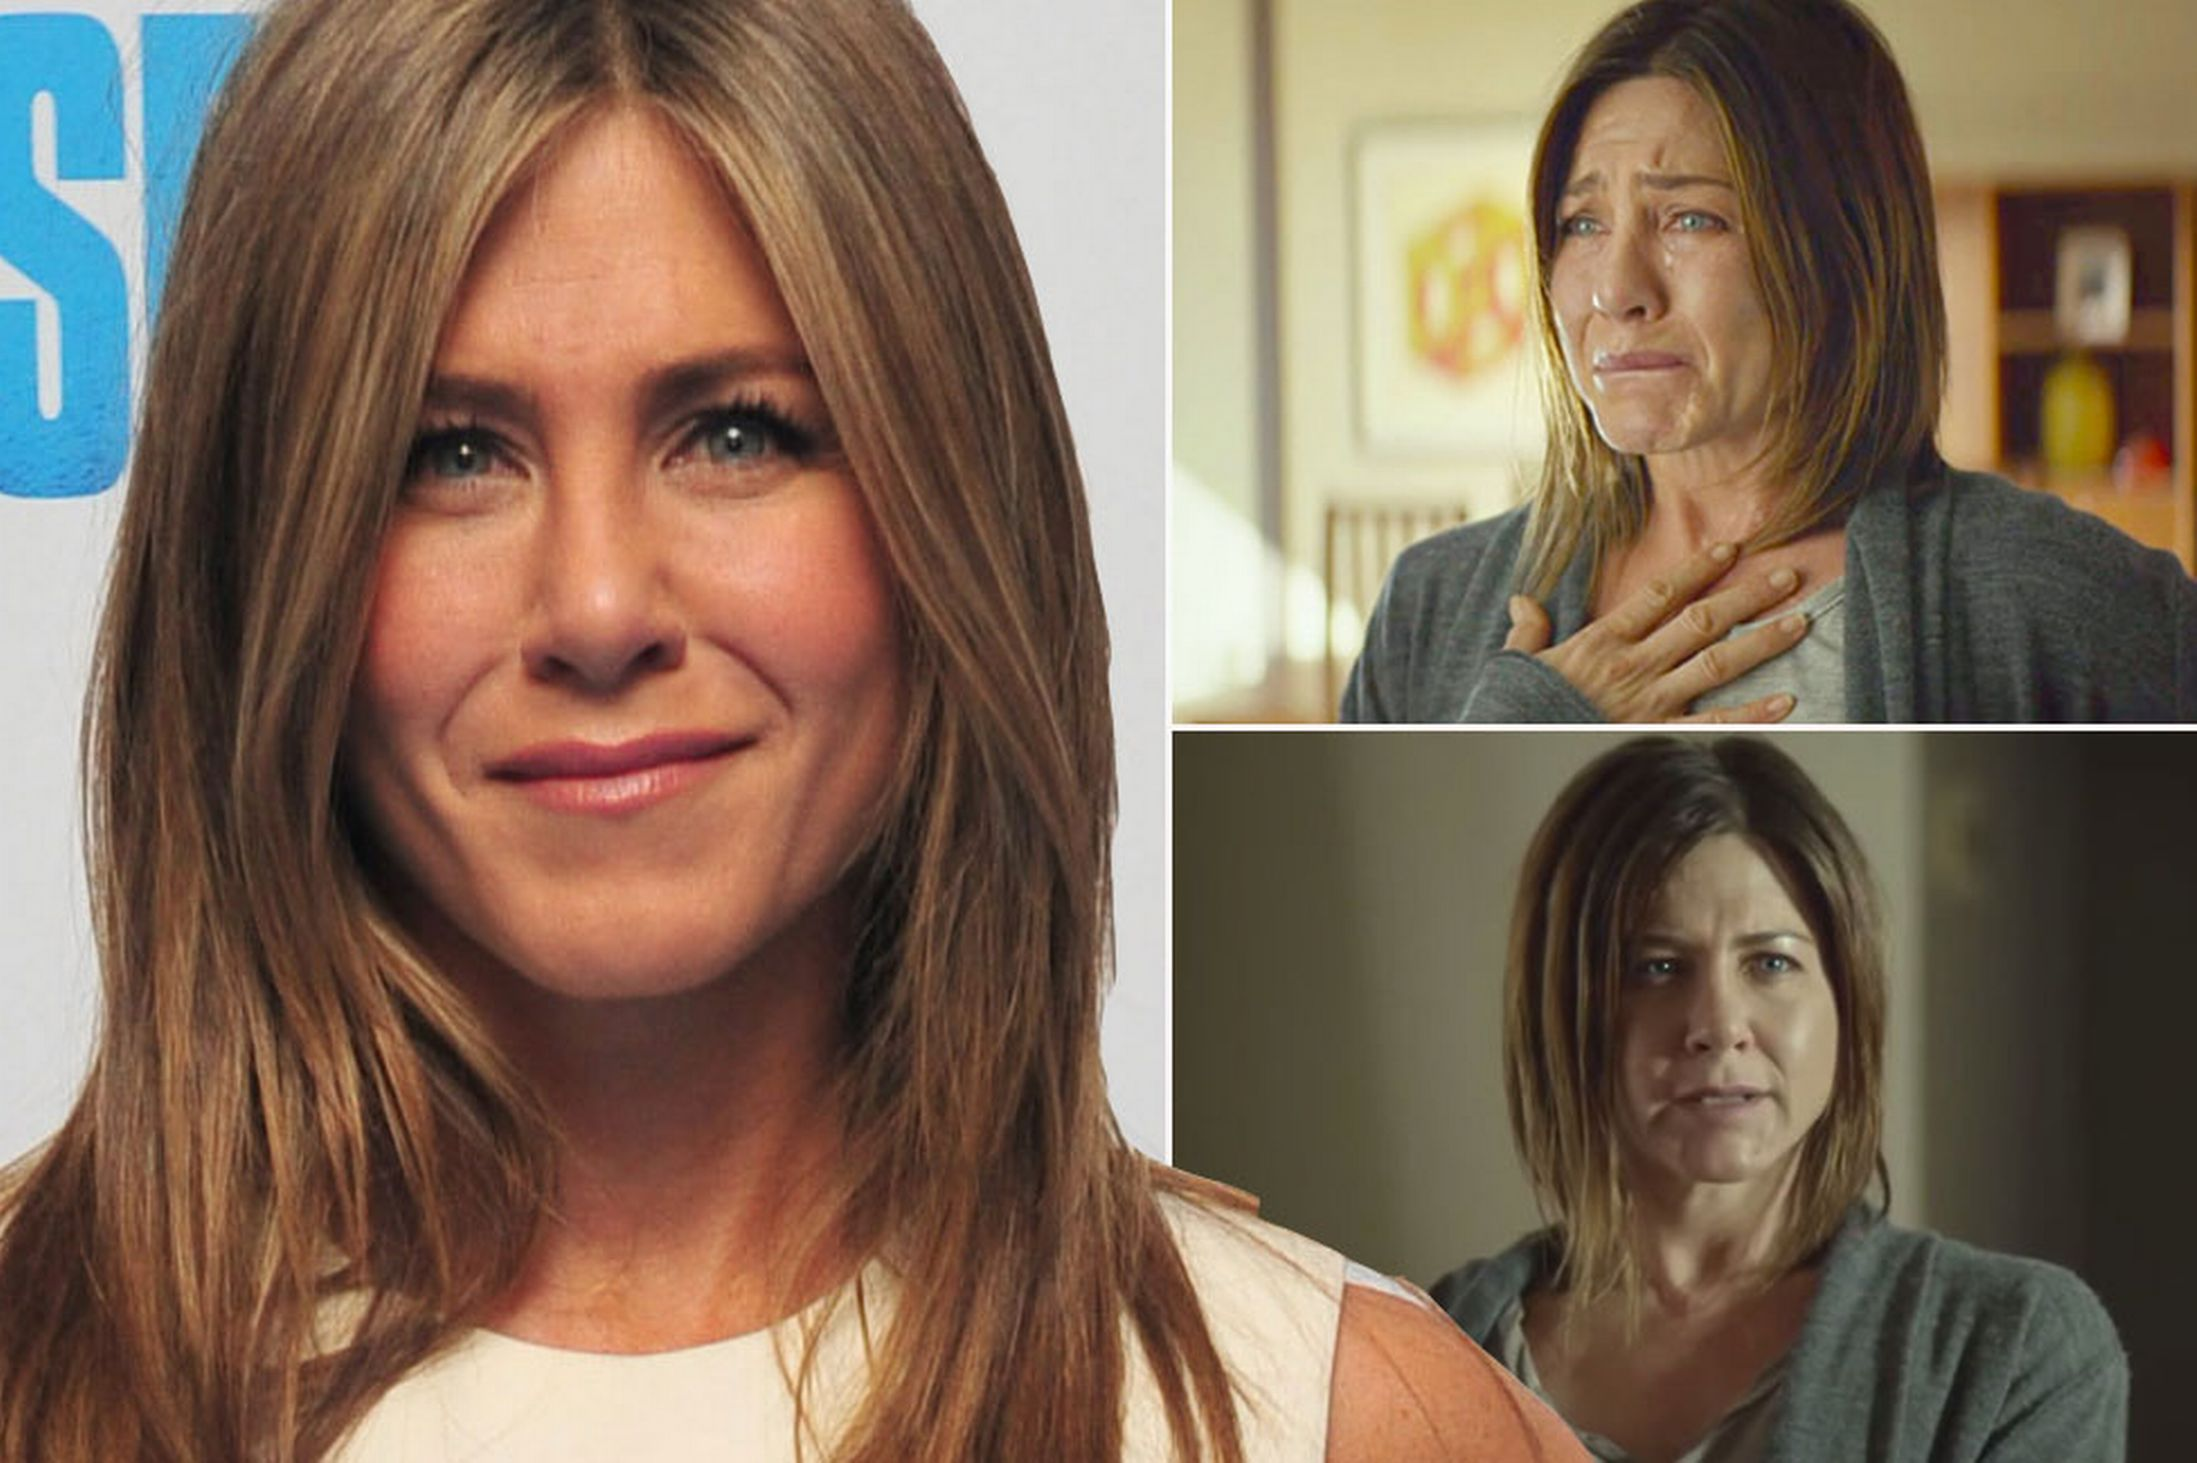 Jennifer Aniston Is ALL ALONE As She Goes Shopping in Paris - The City of LOVE!